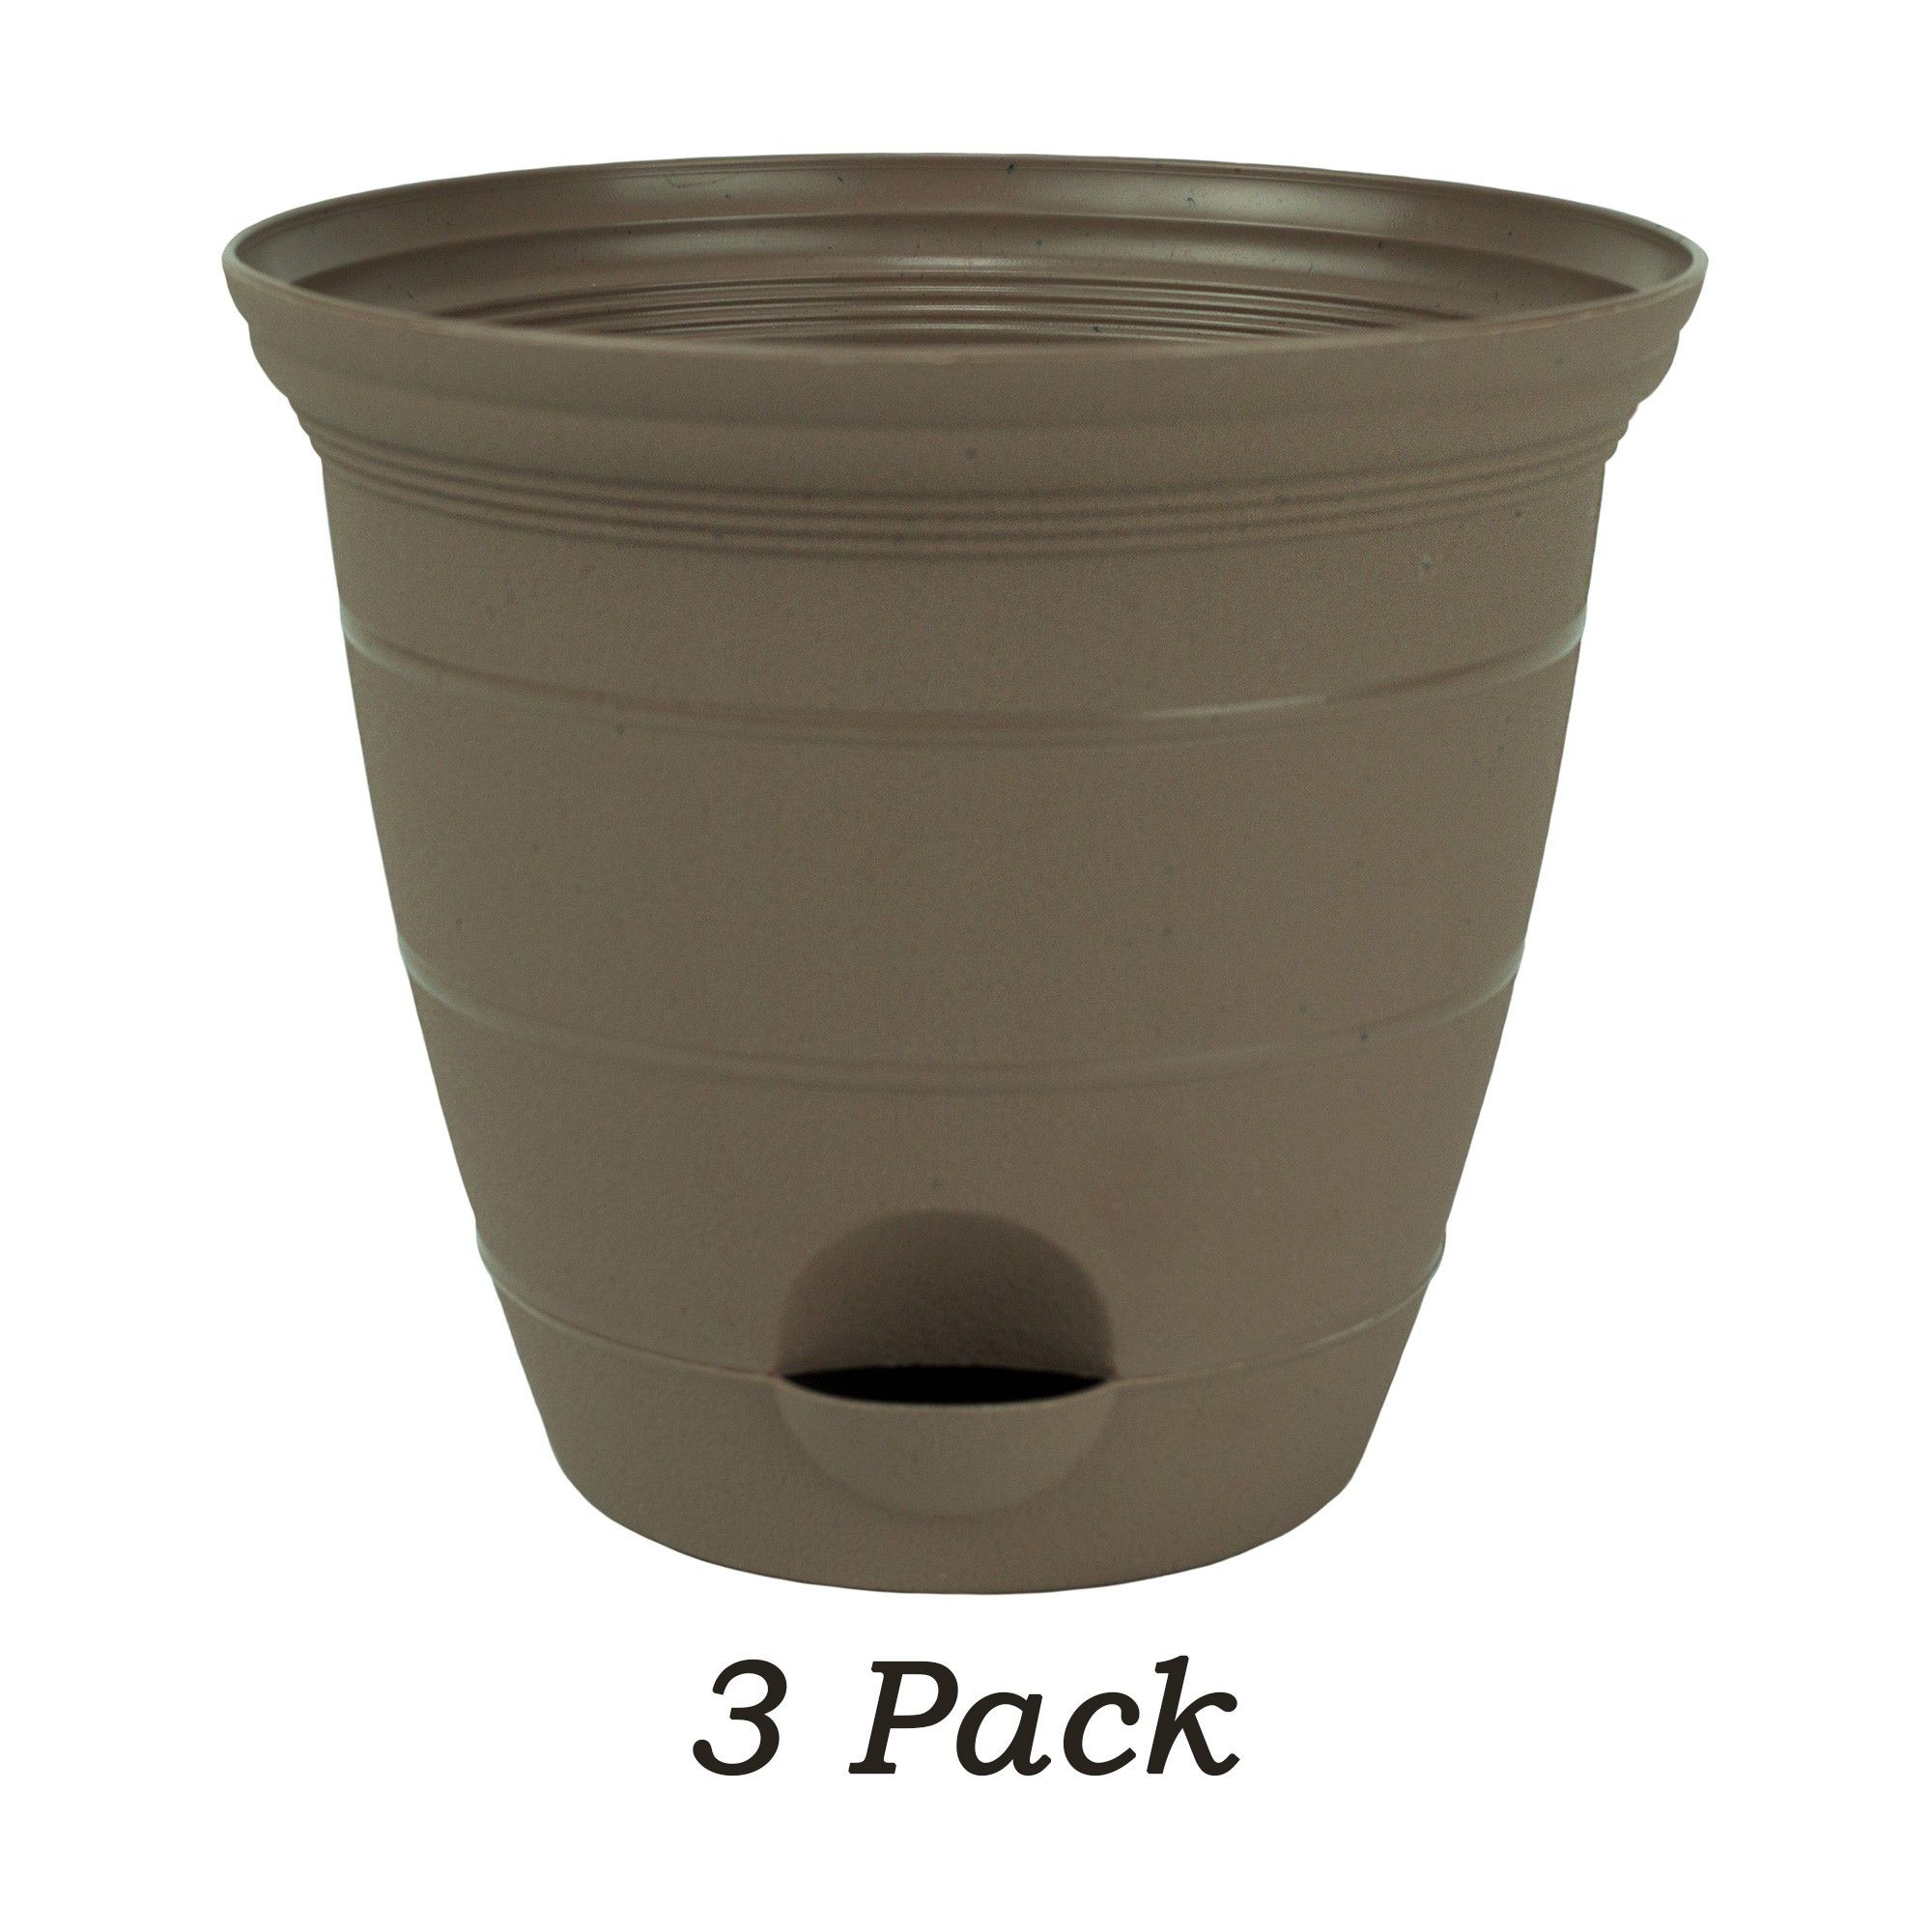 Misco 3 Pack 12 Inch Sandalwood Plastic Self Watering Terra Flower Pot Or Garden Planter Garden Planters Garden Planters Pots Flower Pots